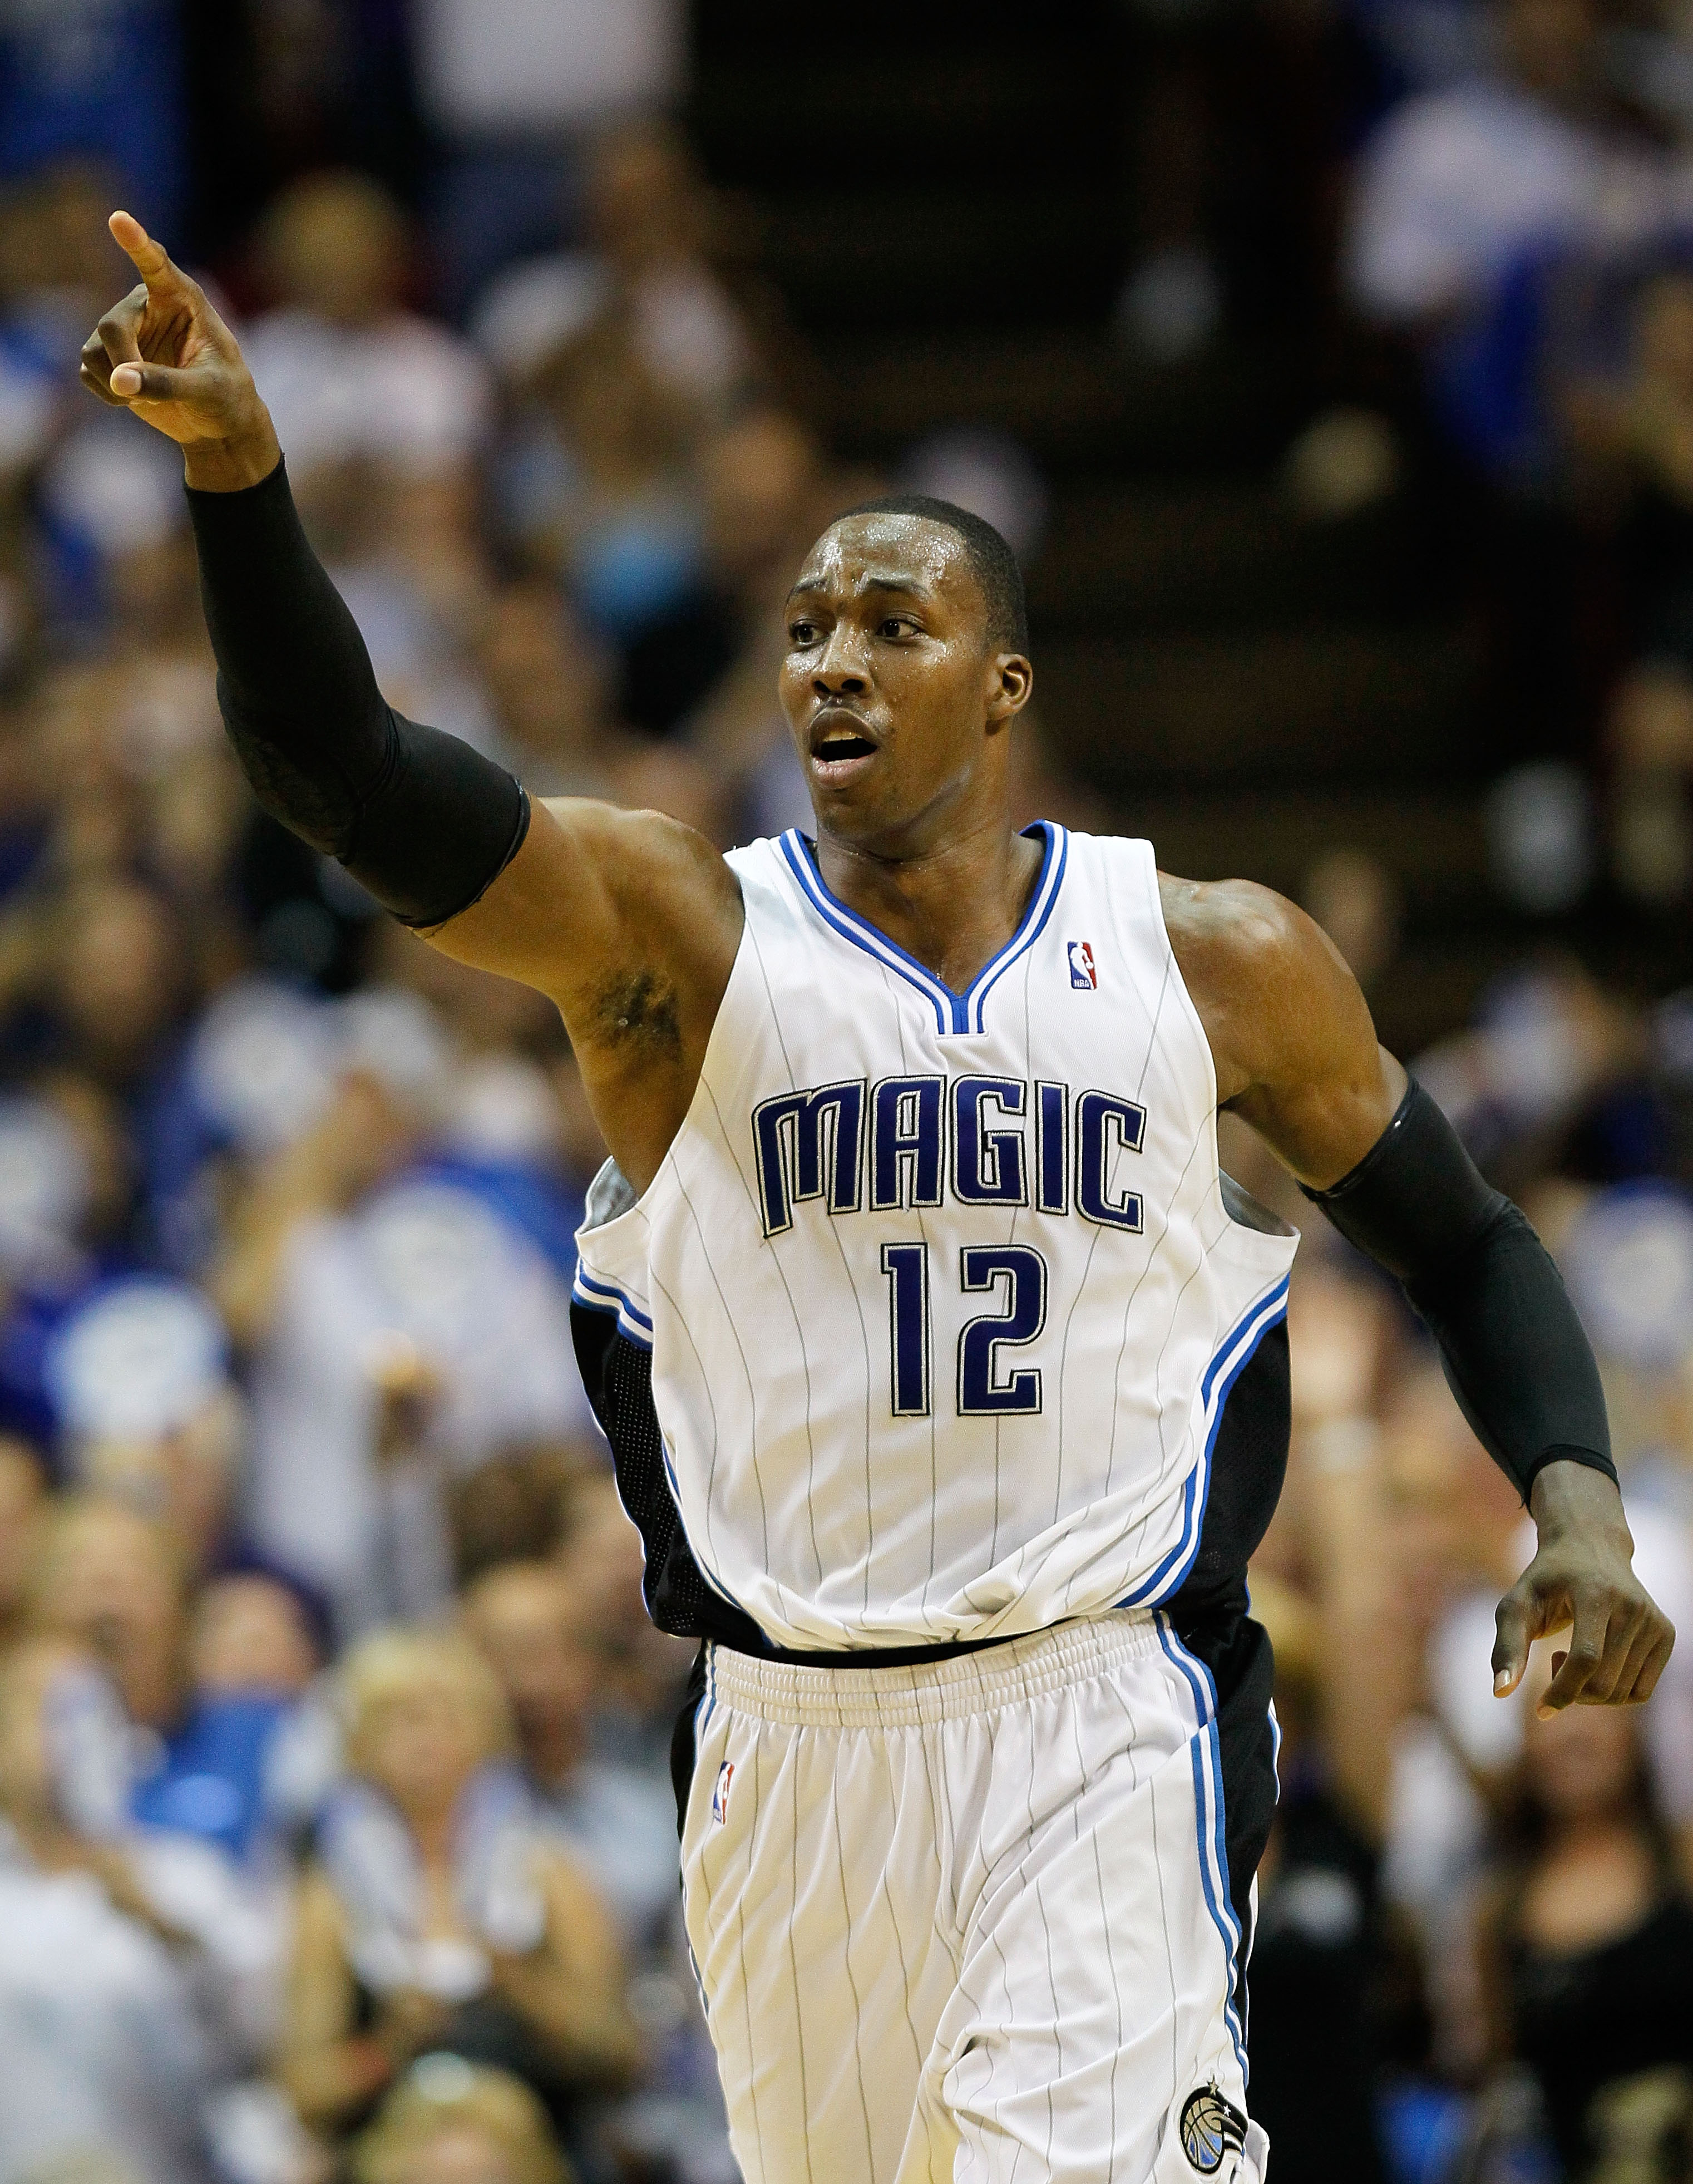 ORLANDO, FL - MAY 26:  Dwight Howard #12 of the Orlando Magic reacts against the Boston Celtics in Game Five of the Eastern Conference Finals during the 2010 NBA Playoffs at Amway Arena on May 26, 2010 in Orlando, Florida.  NOTE TO USER: User expressly ac